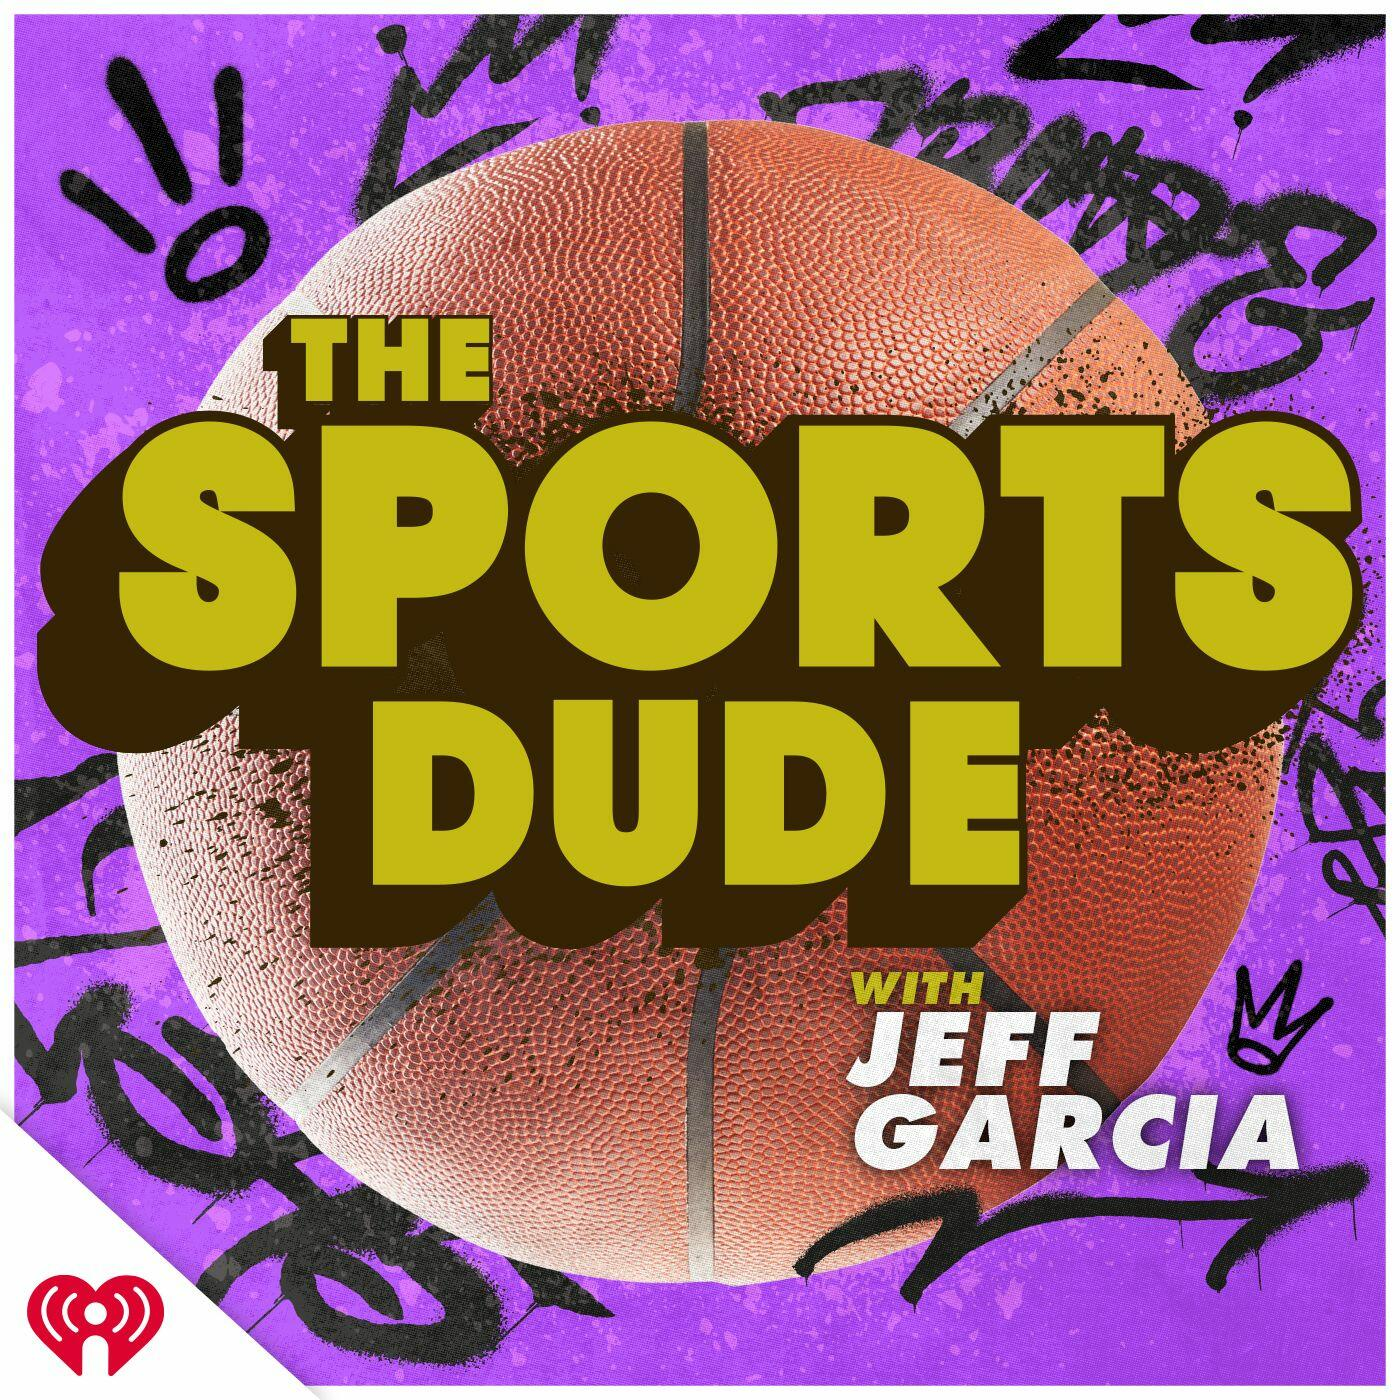 Listen to the The Sports Dude with Jeff Garcia Episode - Jensen Karp host of the No-Sports Report joins Jeff G & the Cruz Show on iHeartRadio | iHeartRadio